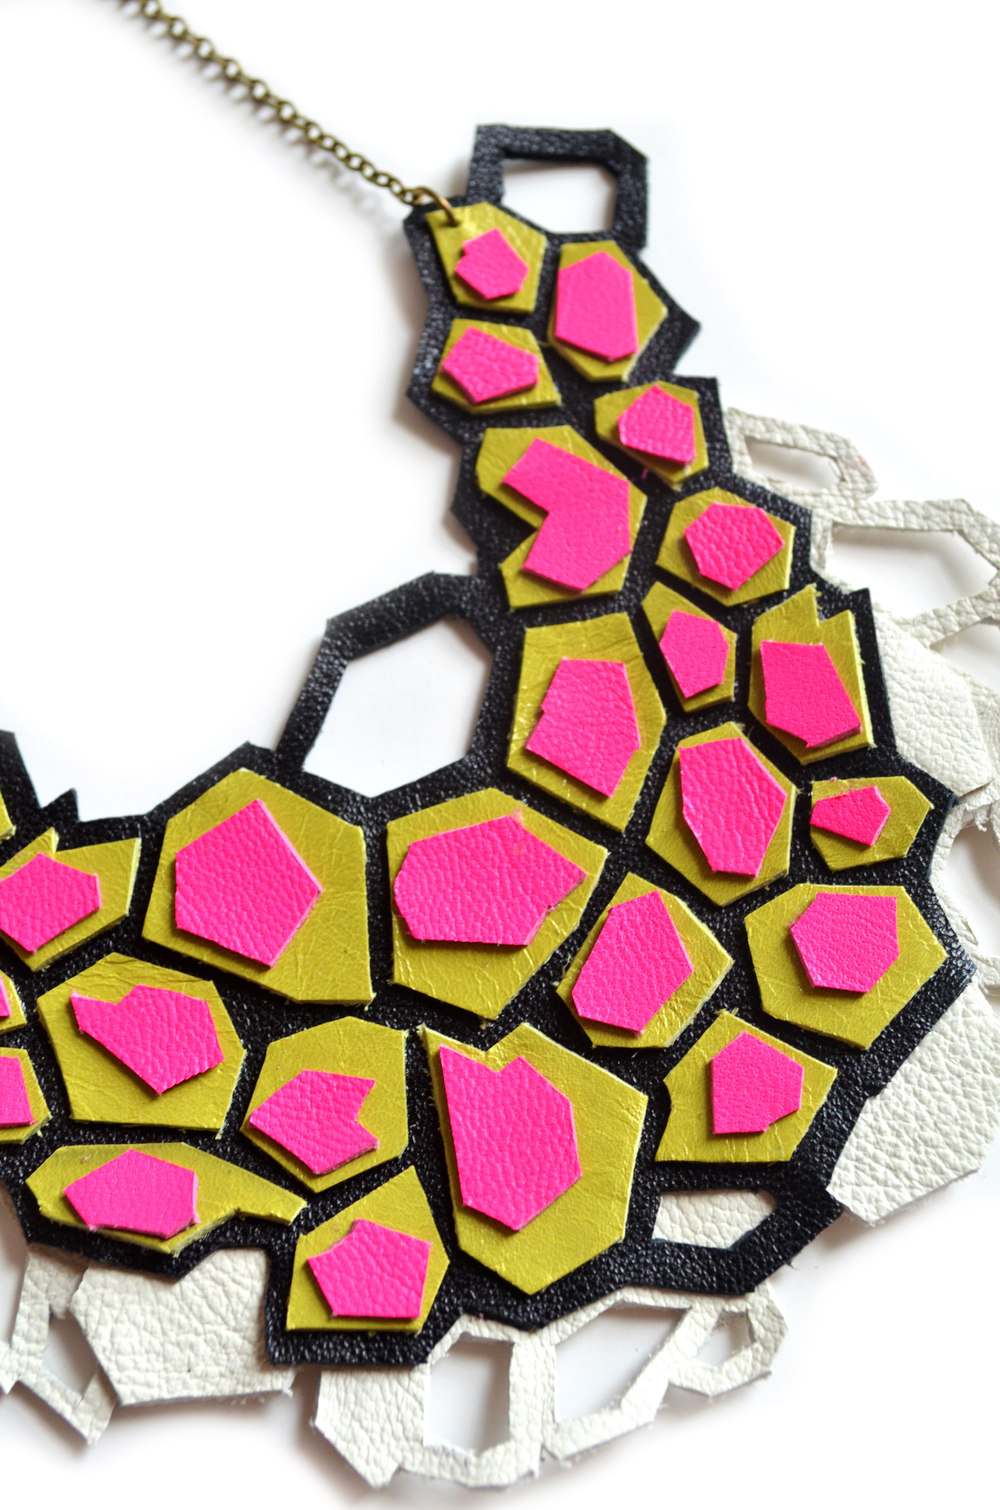 Geometric Statement Necklace, Hot Pink and Lime Facted Hexagons, Leather Jewelry 5.jpg